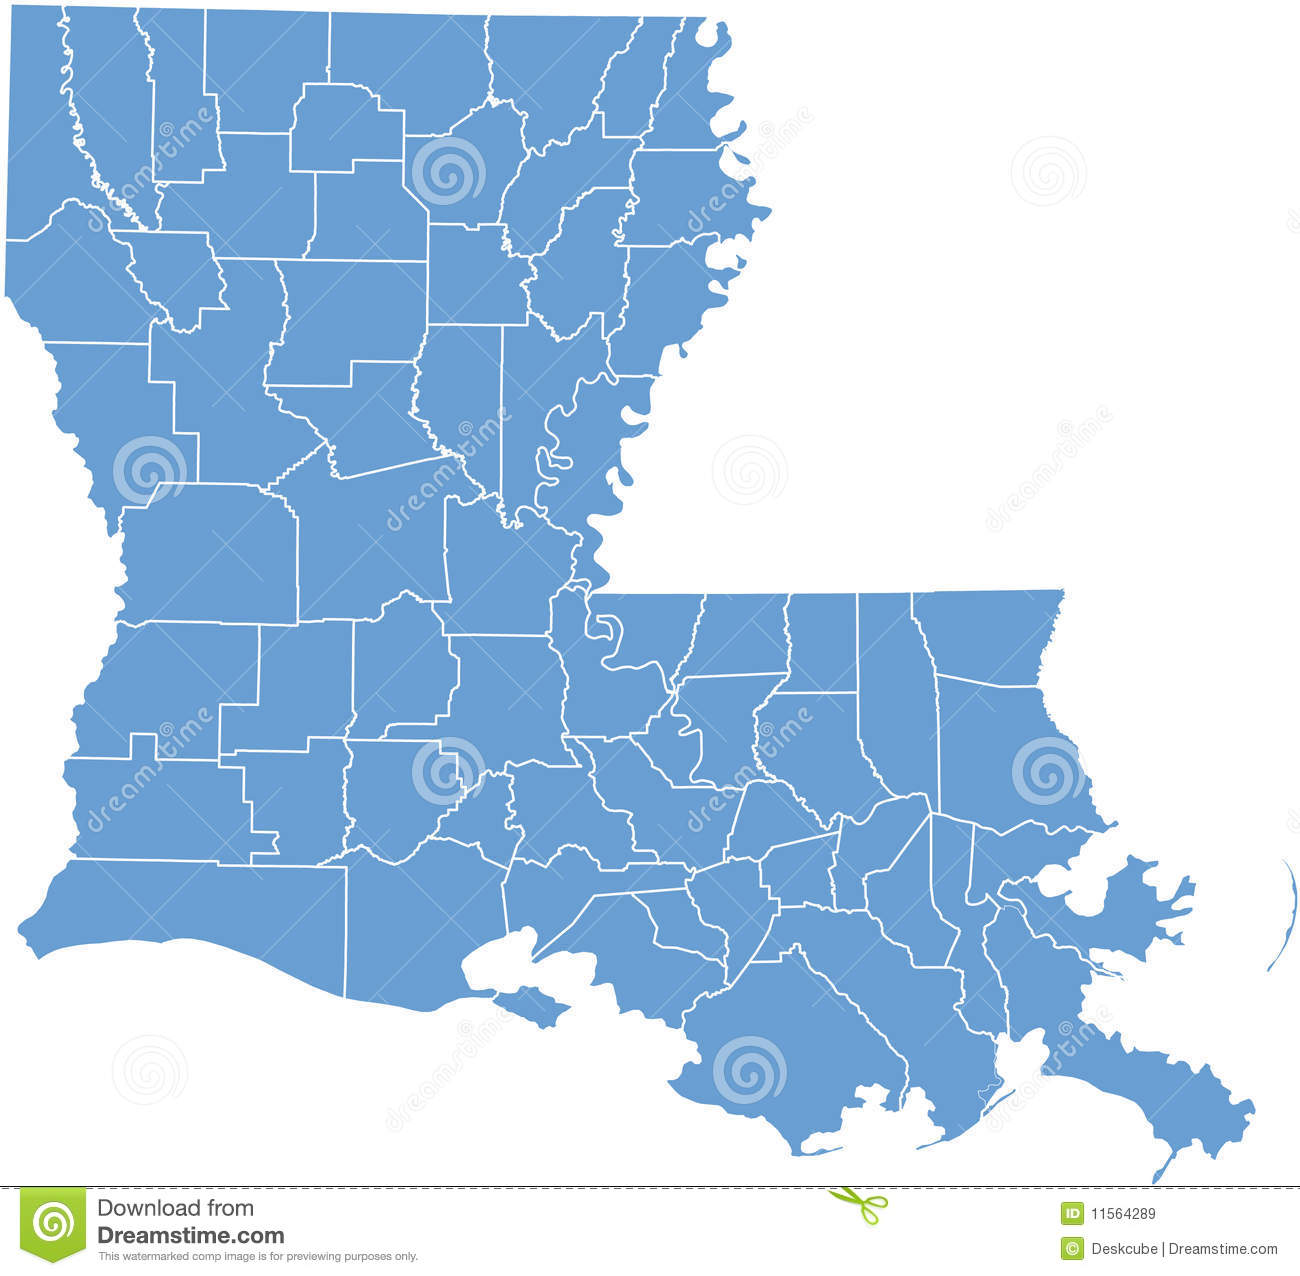 Louisiana State Map By Counties Royalty Free Stock Images Image - Louisana state map